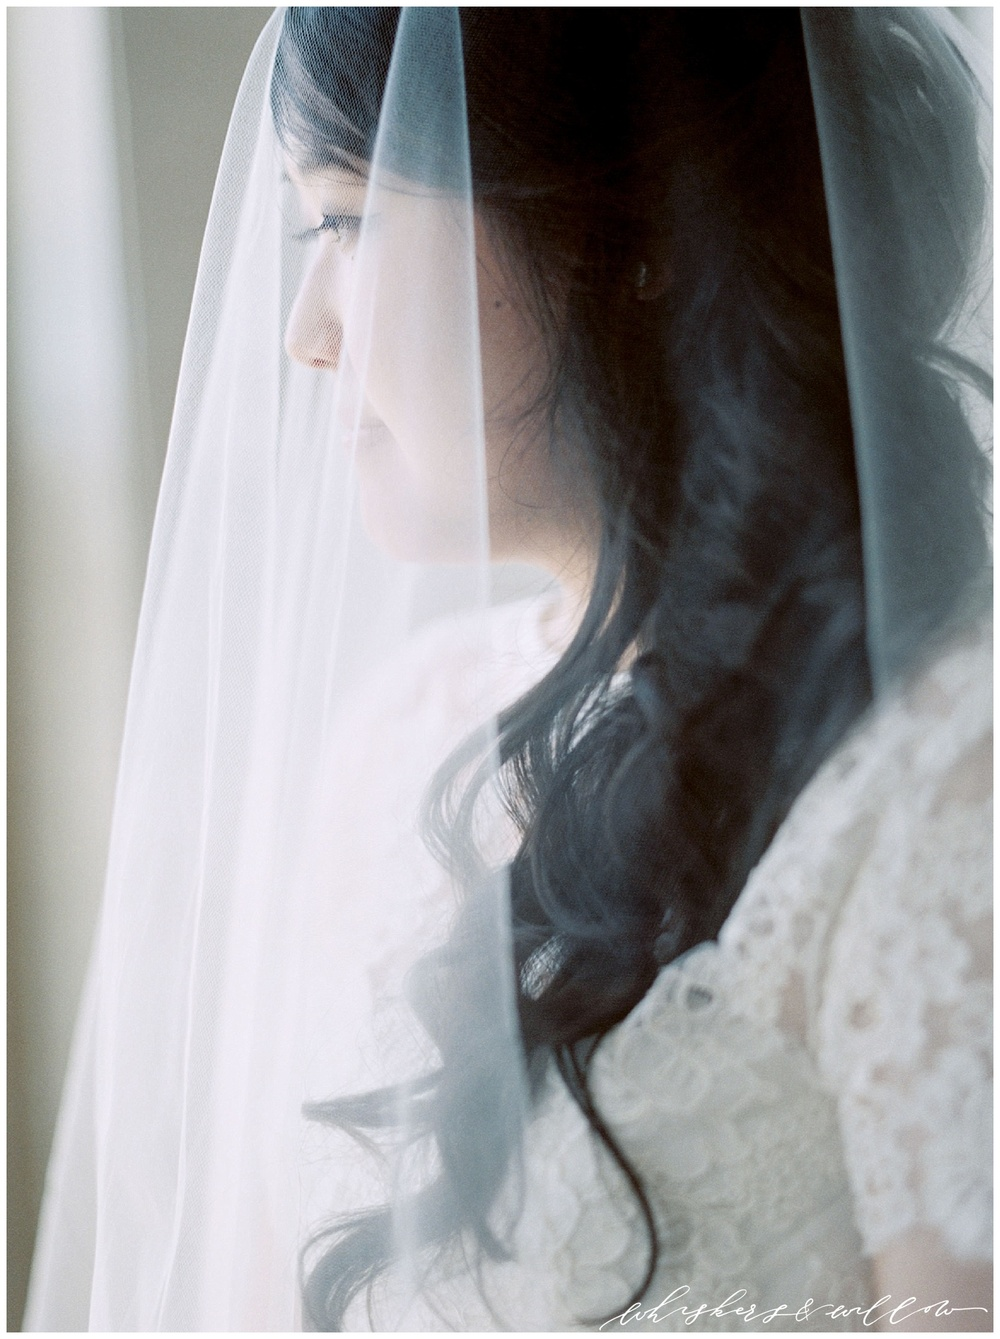 Veil bride | Ethereal bride | Film photographer | San Diego fine art wedding photography |Carmel Mountain Ranch Country Club Wedding | Whiskers and Willow Photography